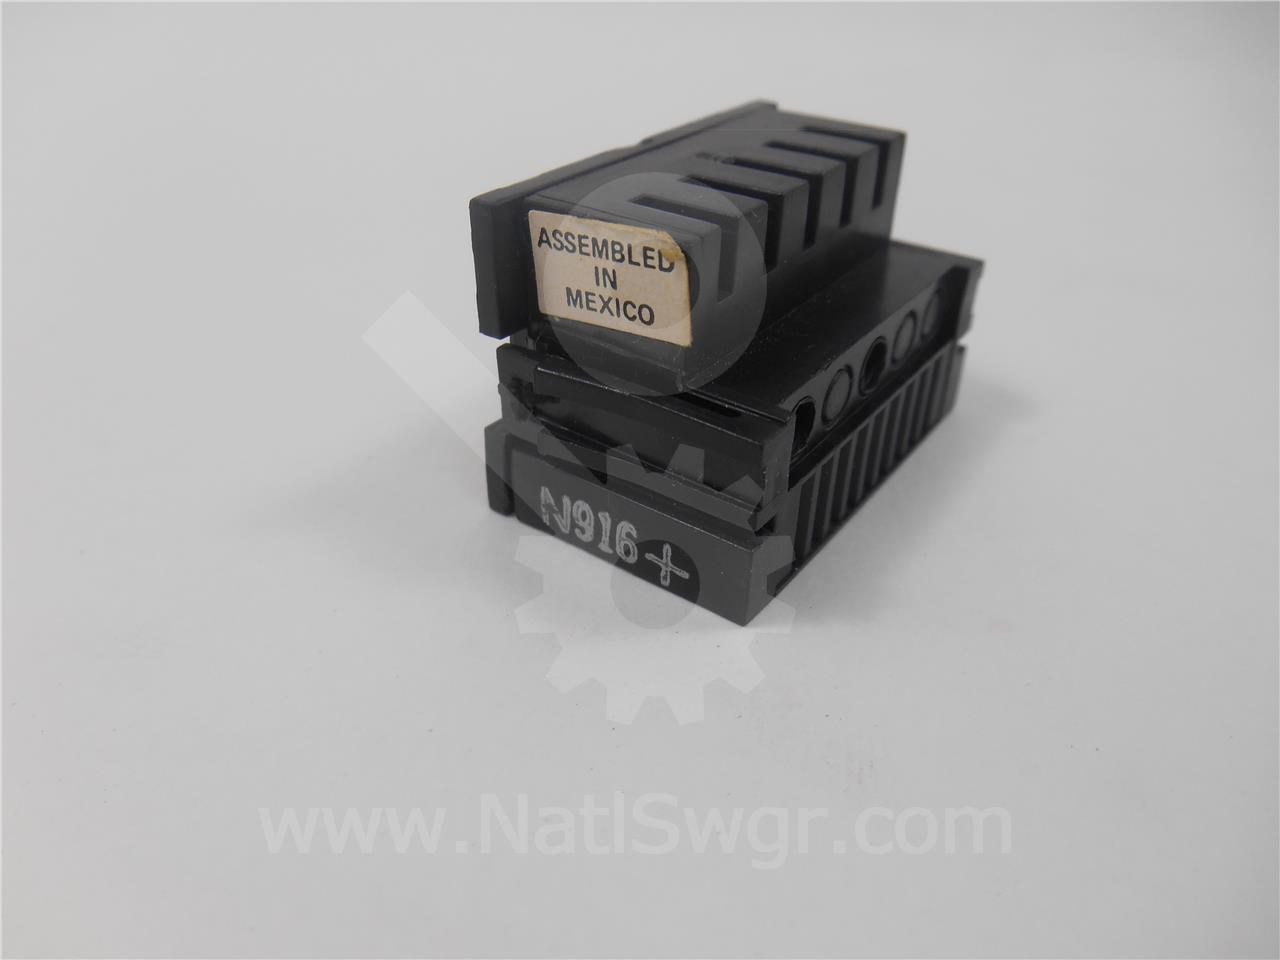 General Electric 1000A GE RATING PLUG 1600A CT